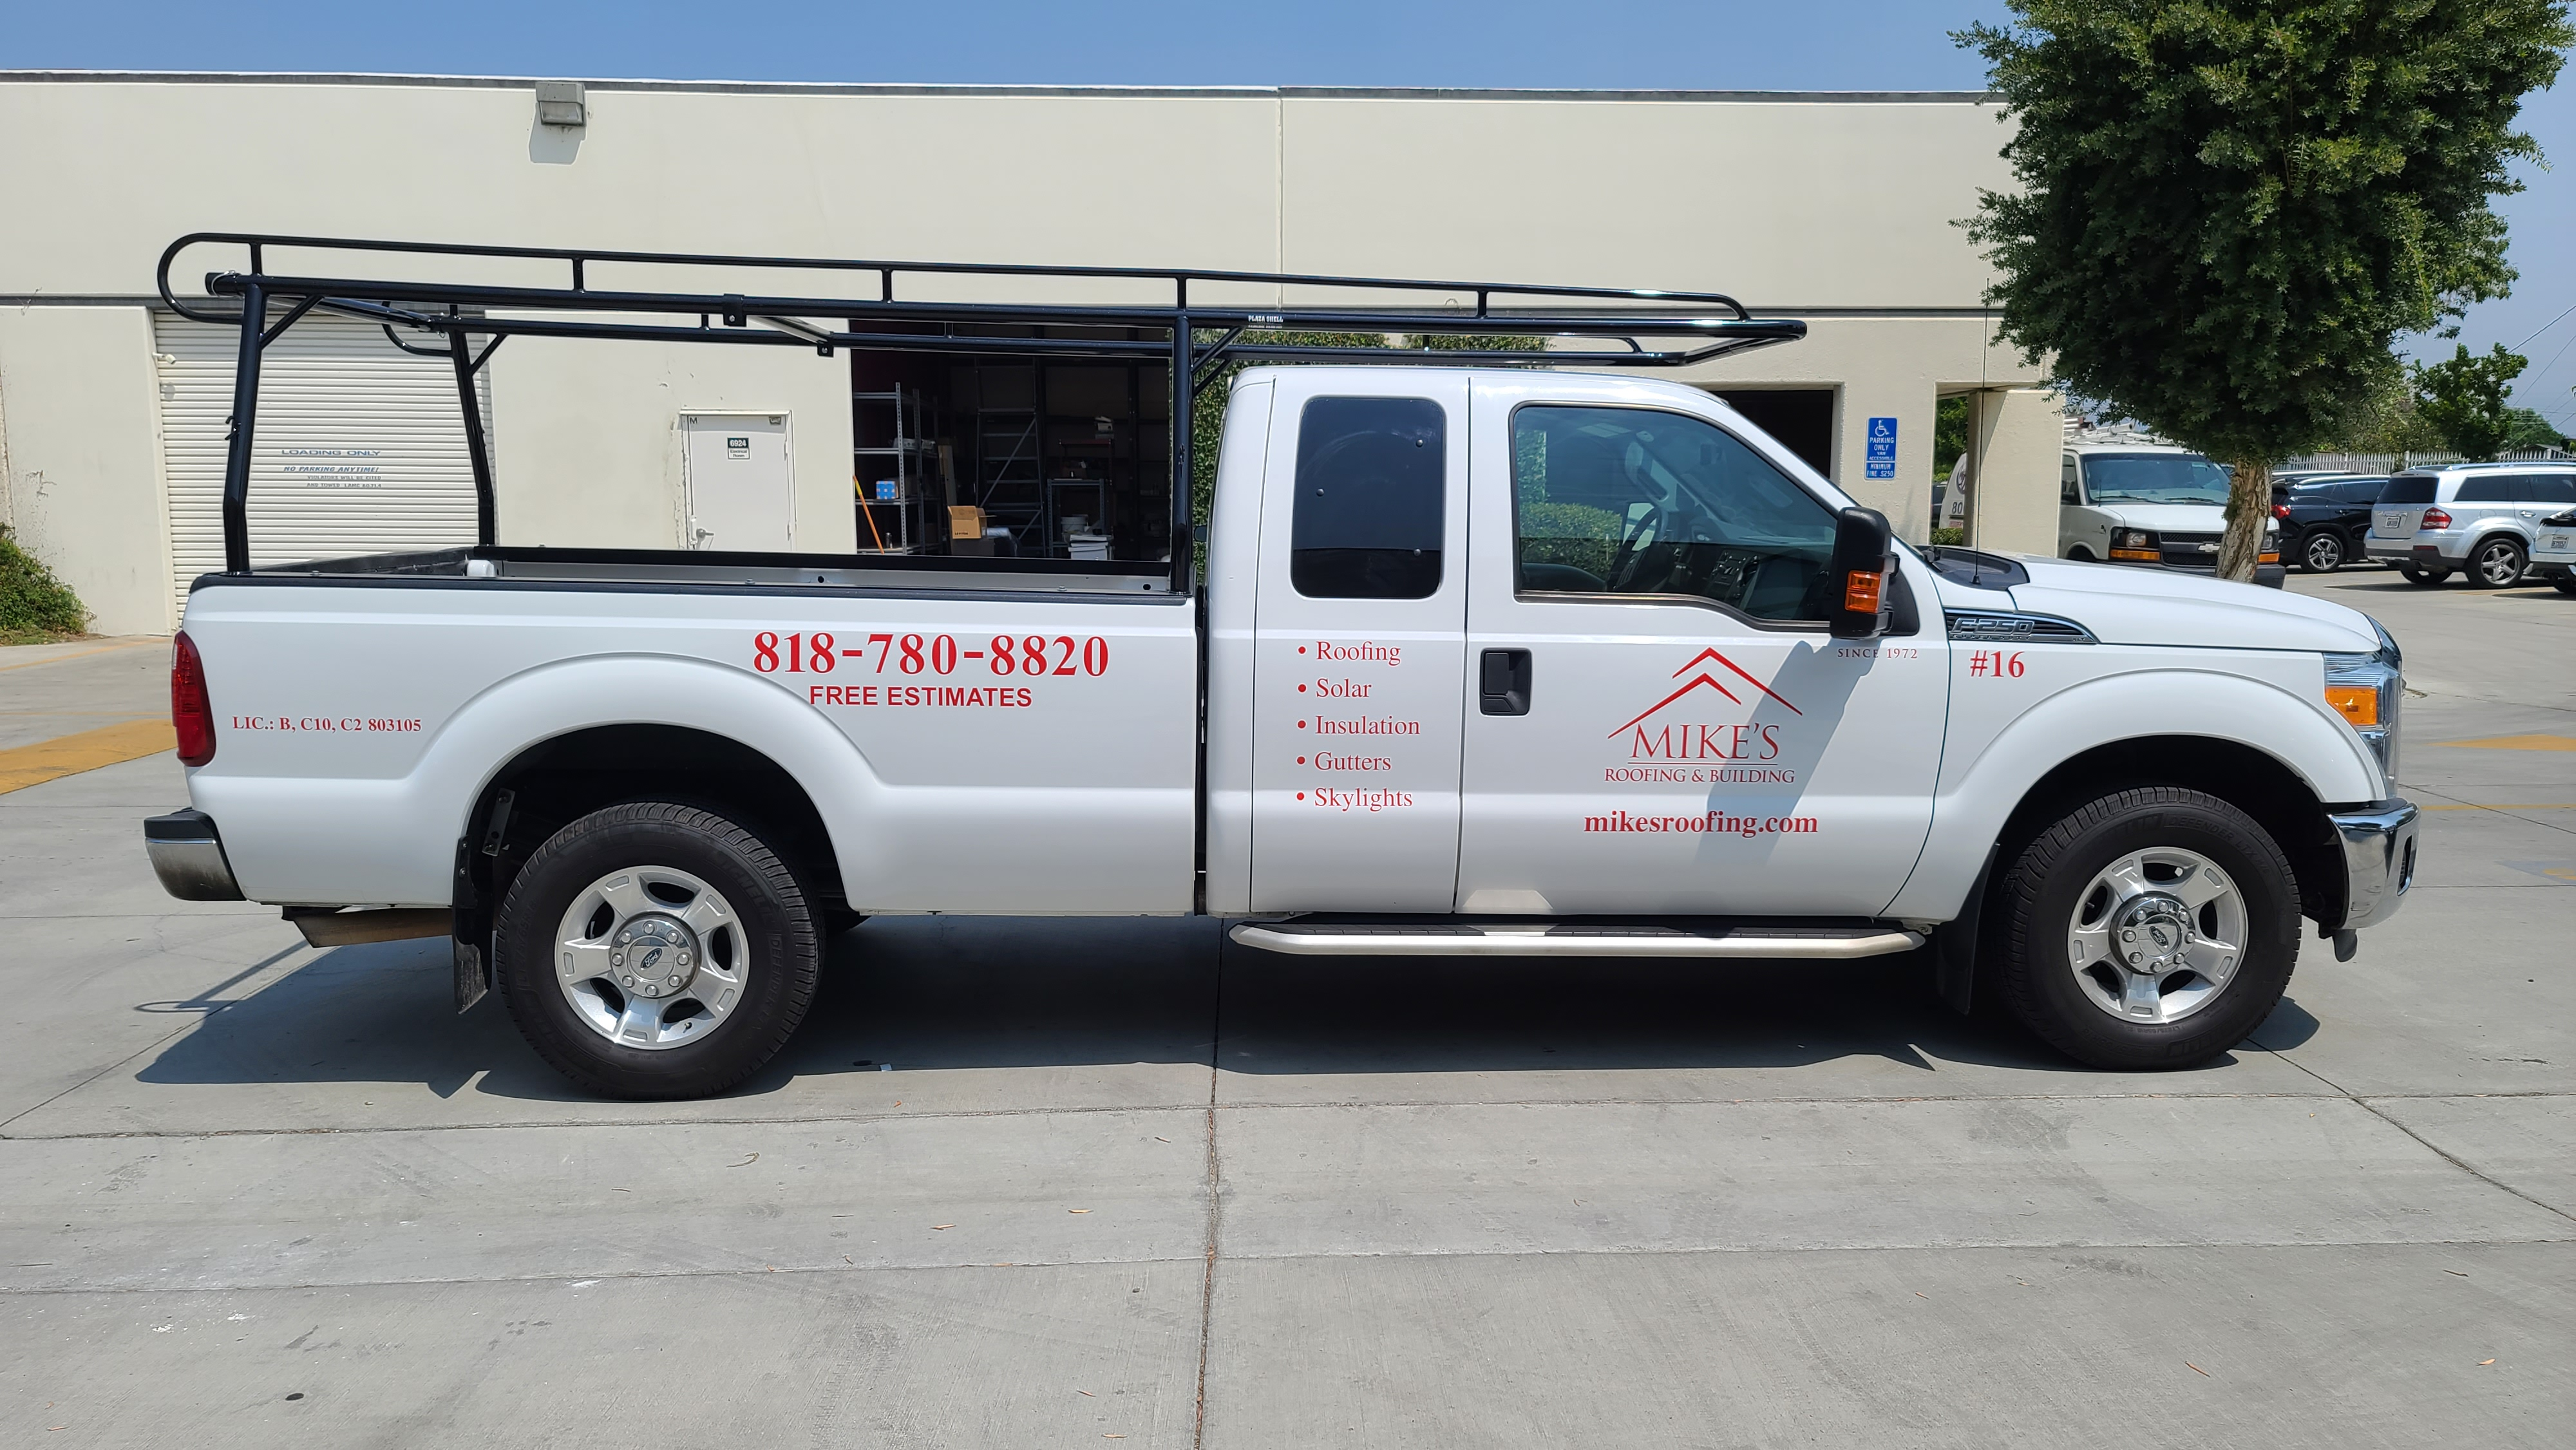 Rebranding also applies to vehicle wraps and graphics, like these new car decals for Mike Roofing's service truck featuring their logo and contact details.